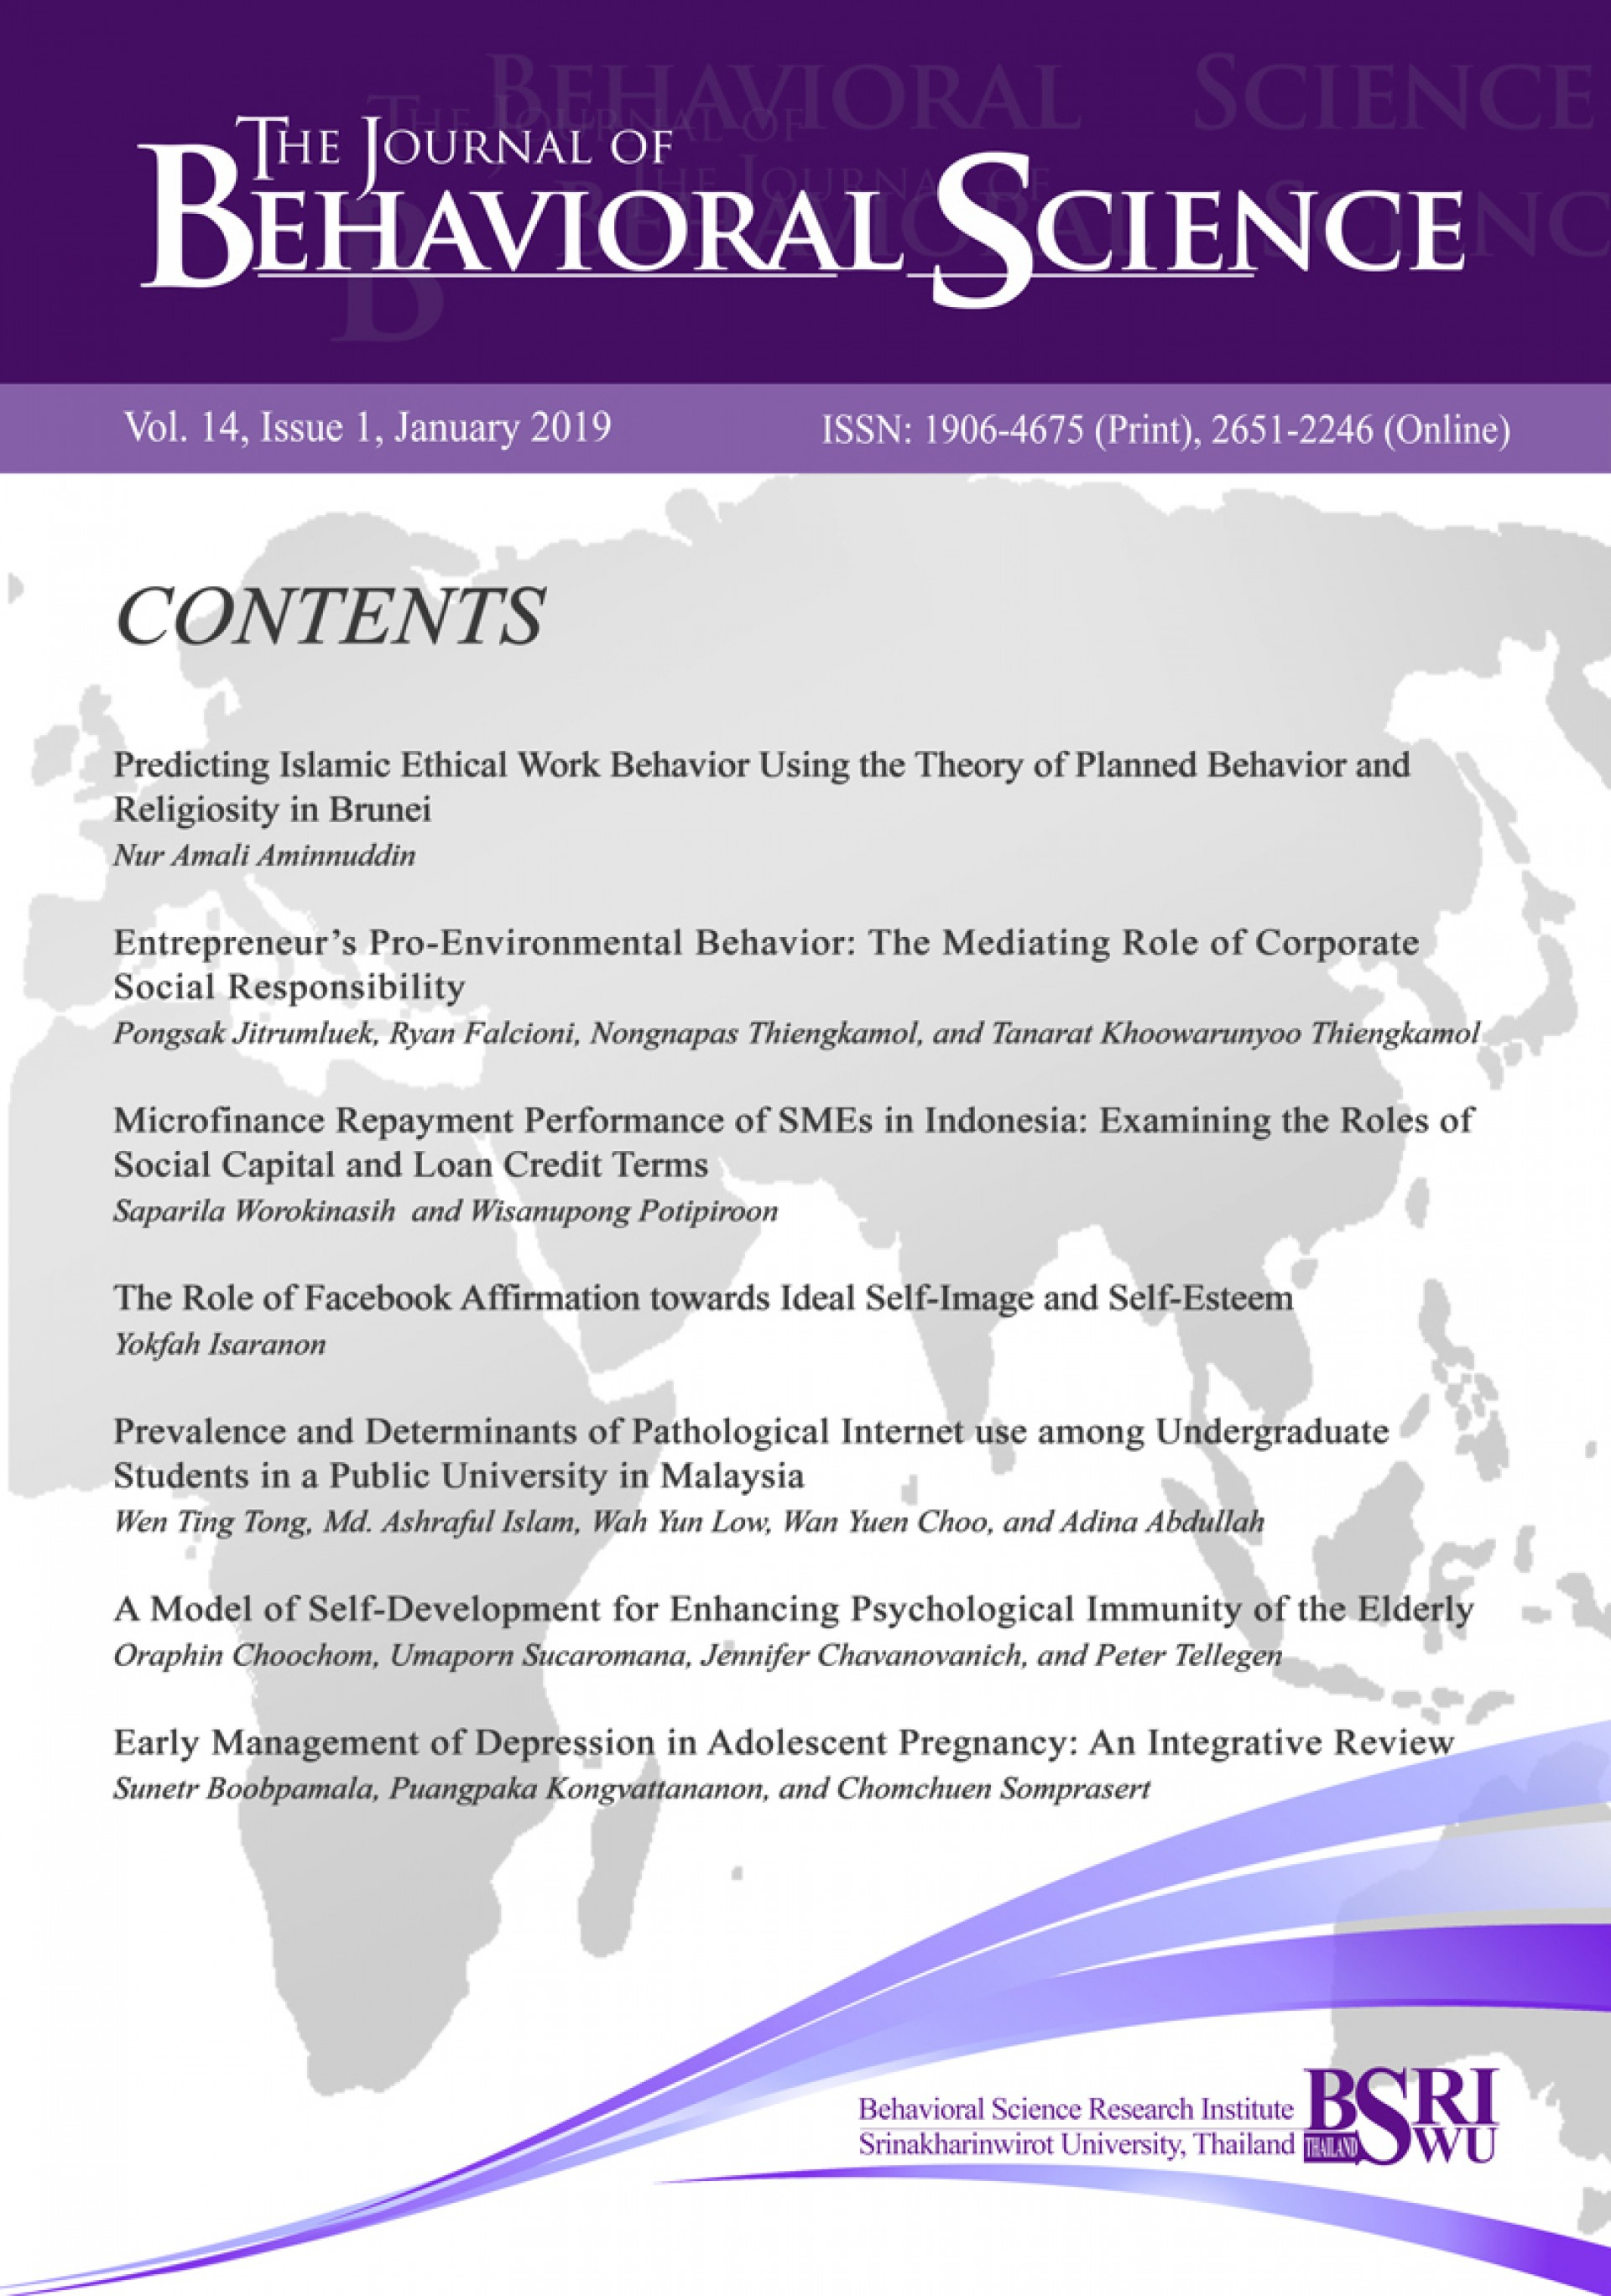 019 Environmental Science Research Papers Pdf Paper Cover Issue 12776 En Us Staggering 1920